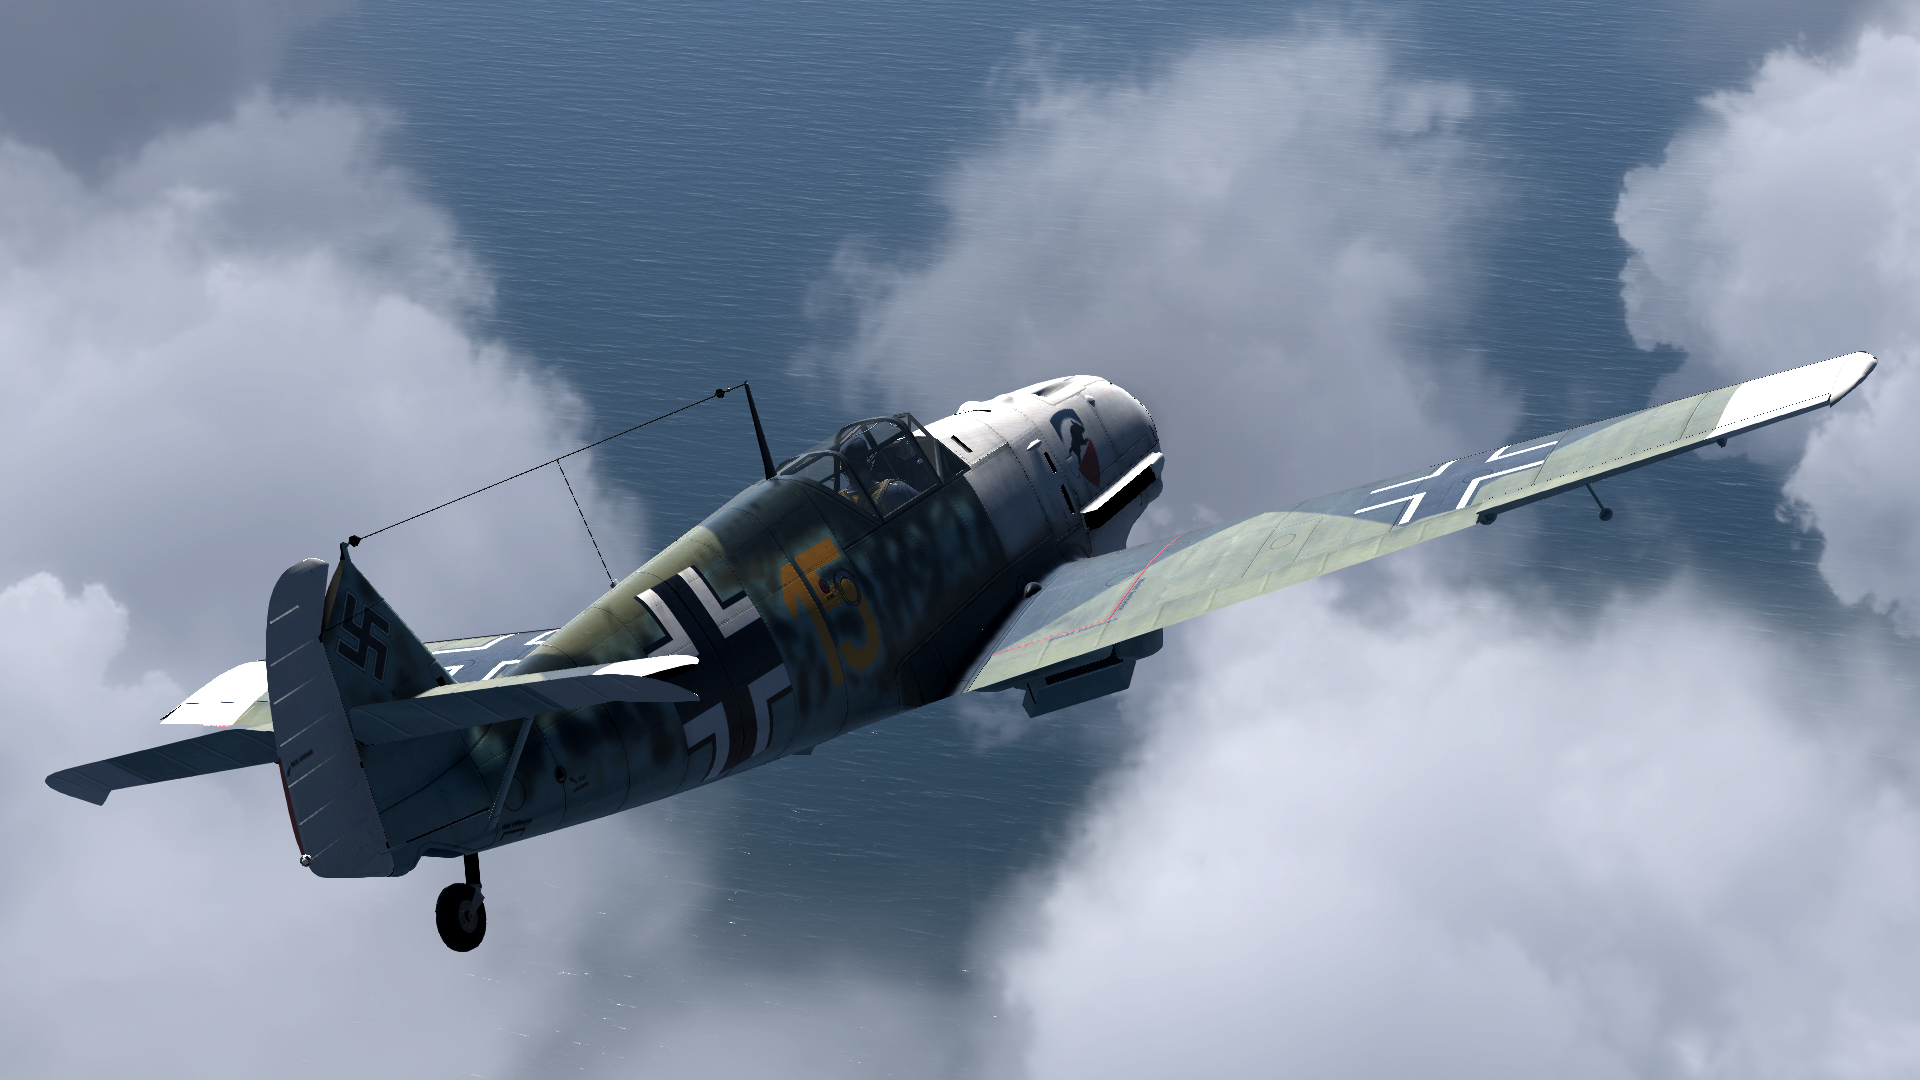 COD CF Bf 109E3 3.JG52 Yellow 15 Kurt Wolff France 1940 V01